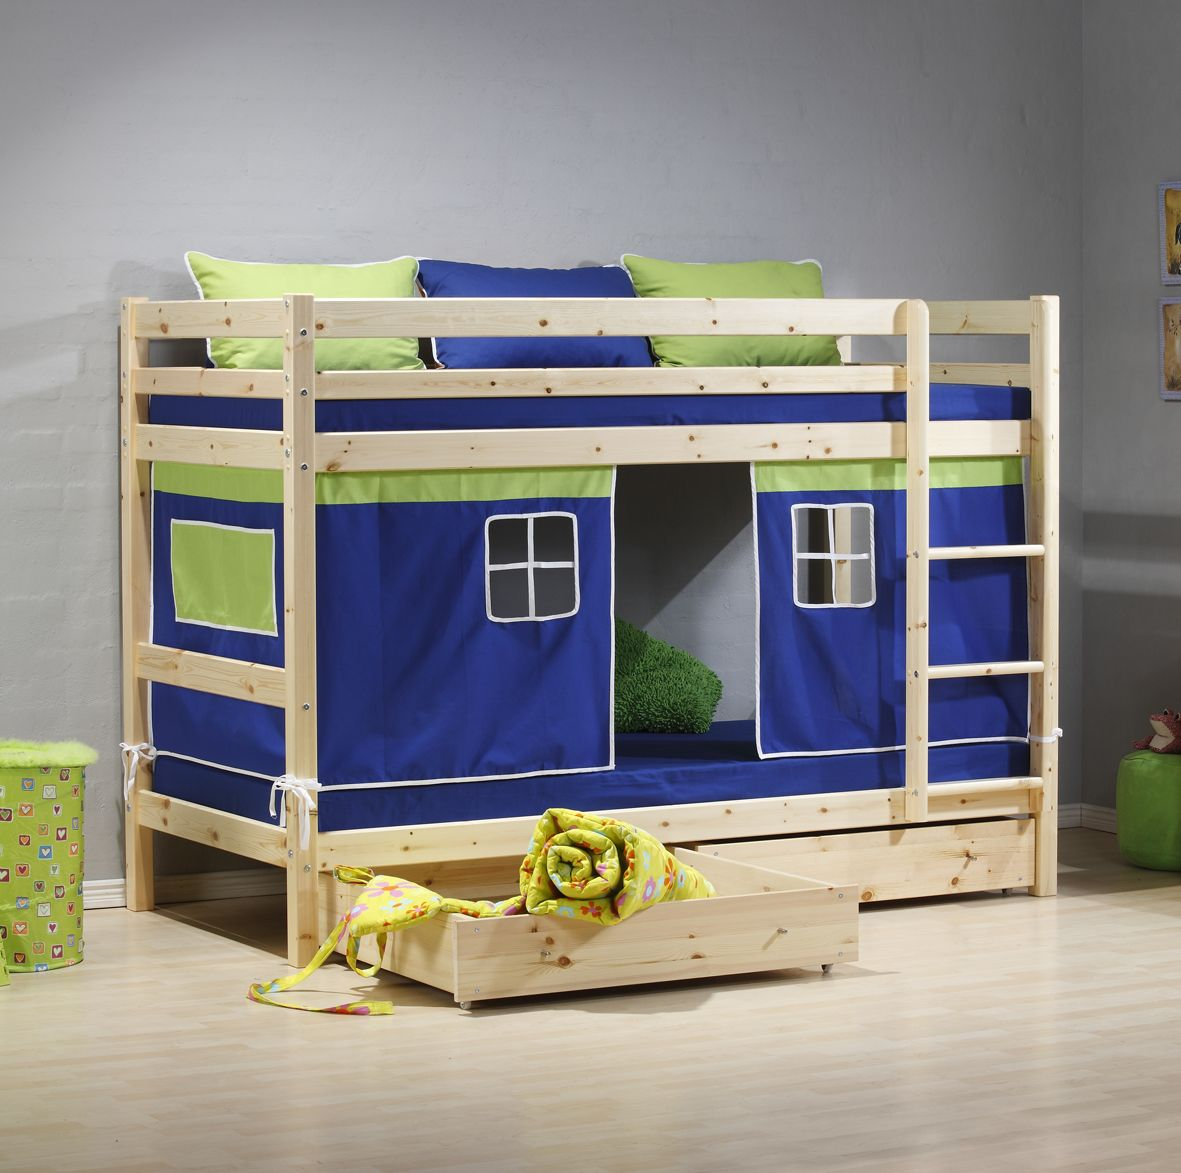 Exceptional 30 Cool Kids Bedroom Space Saving Ideas: Loft Bed And Bunk Beds With Closet  And Hidden Storage Unit Underneath